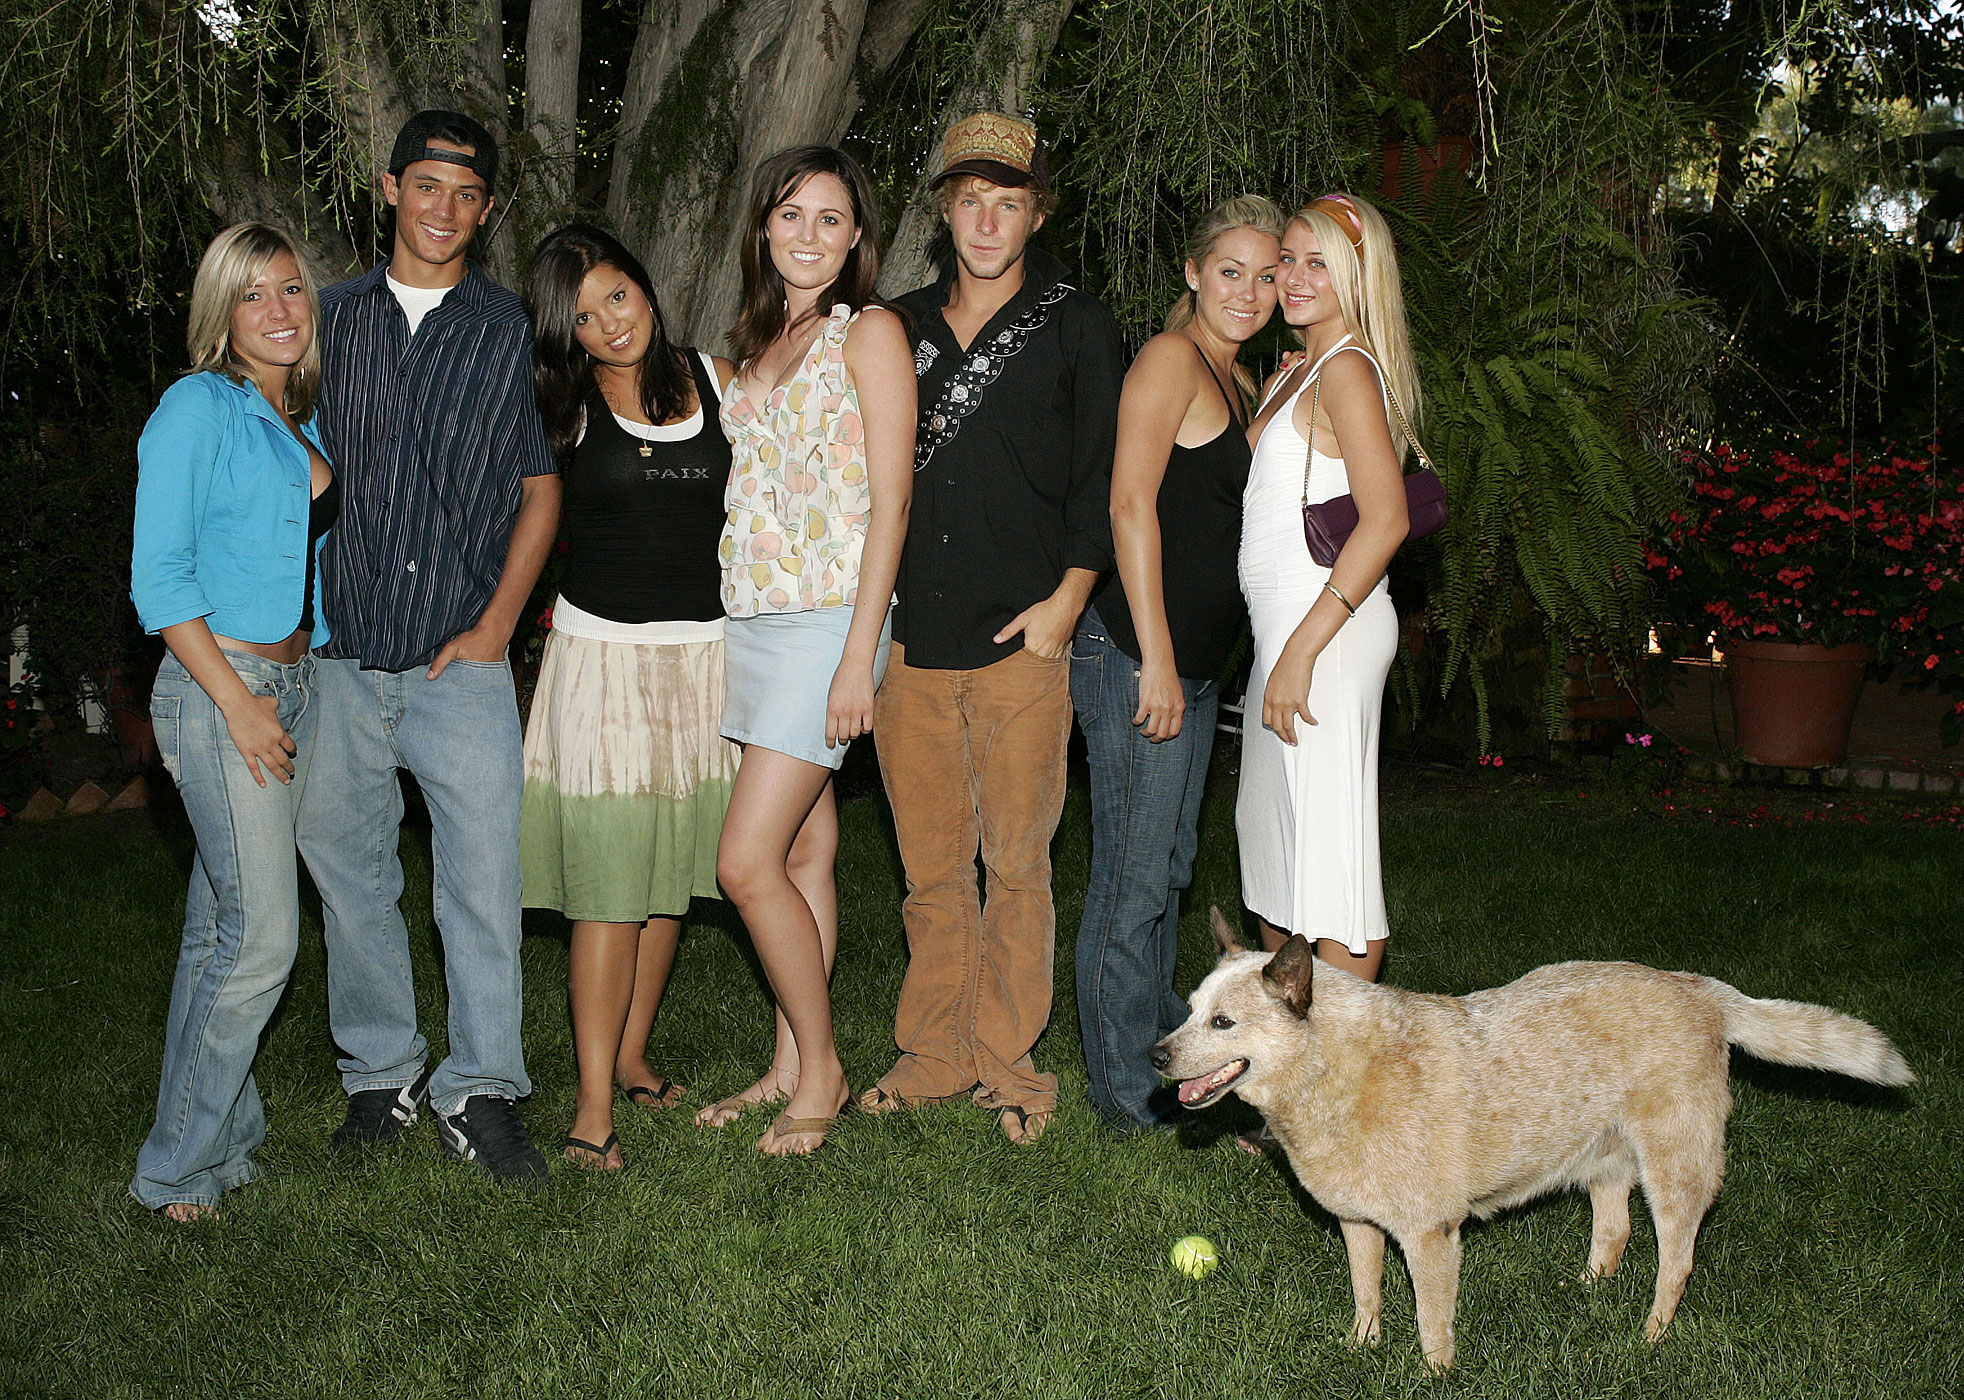 Kristin Cavallari, Stephen Colletti, Lauren Conrad and other cast members of MTV's Laguna Beach: The Real Orange County in July 2004.